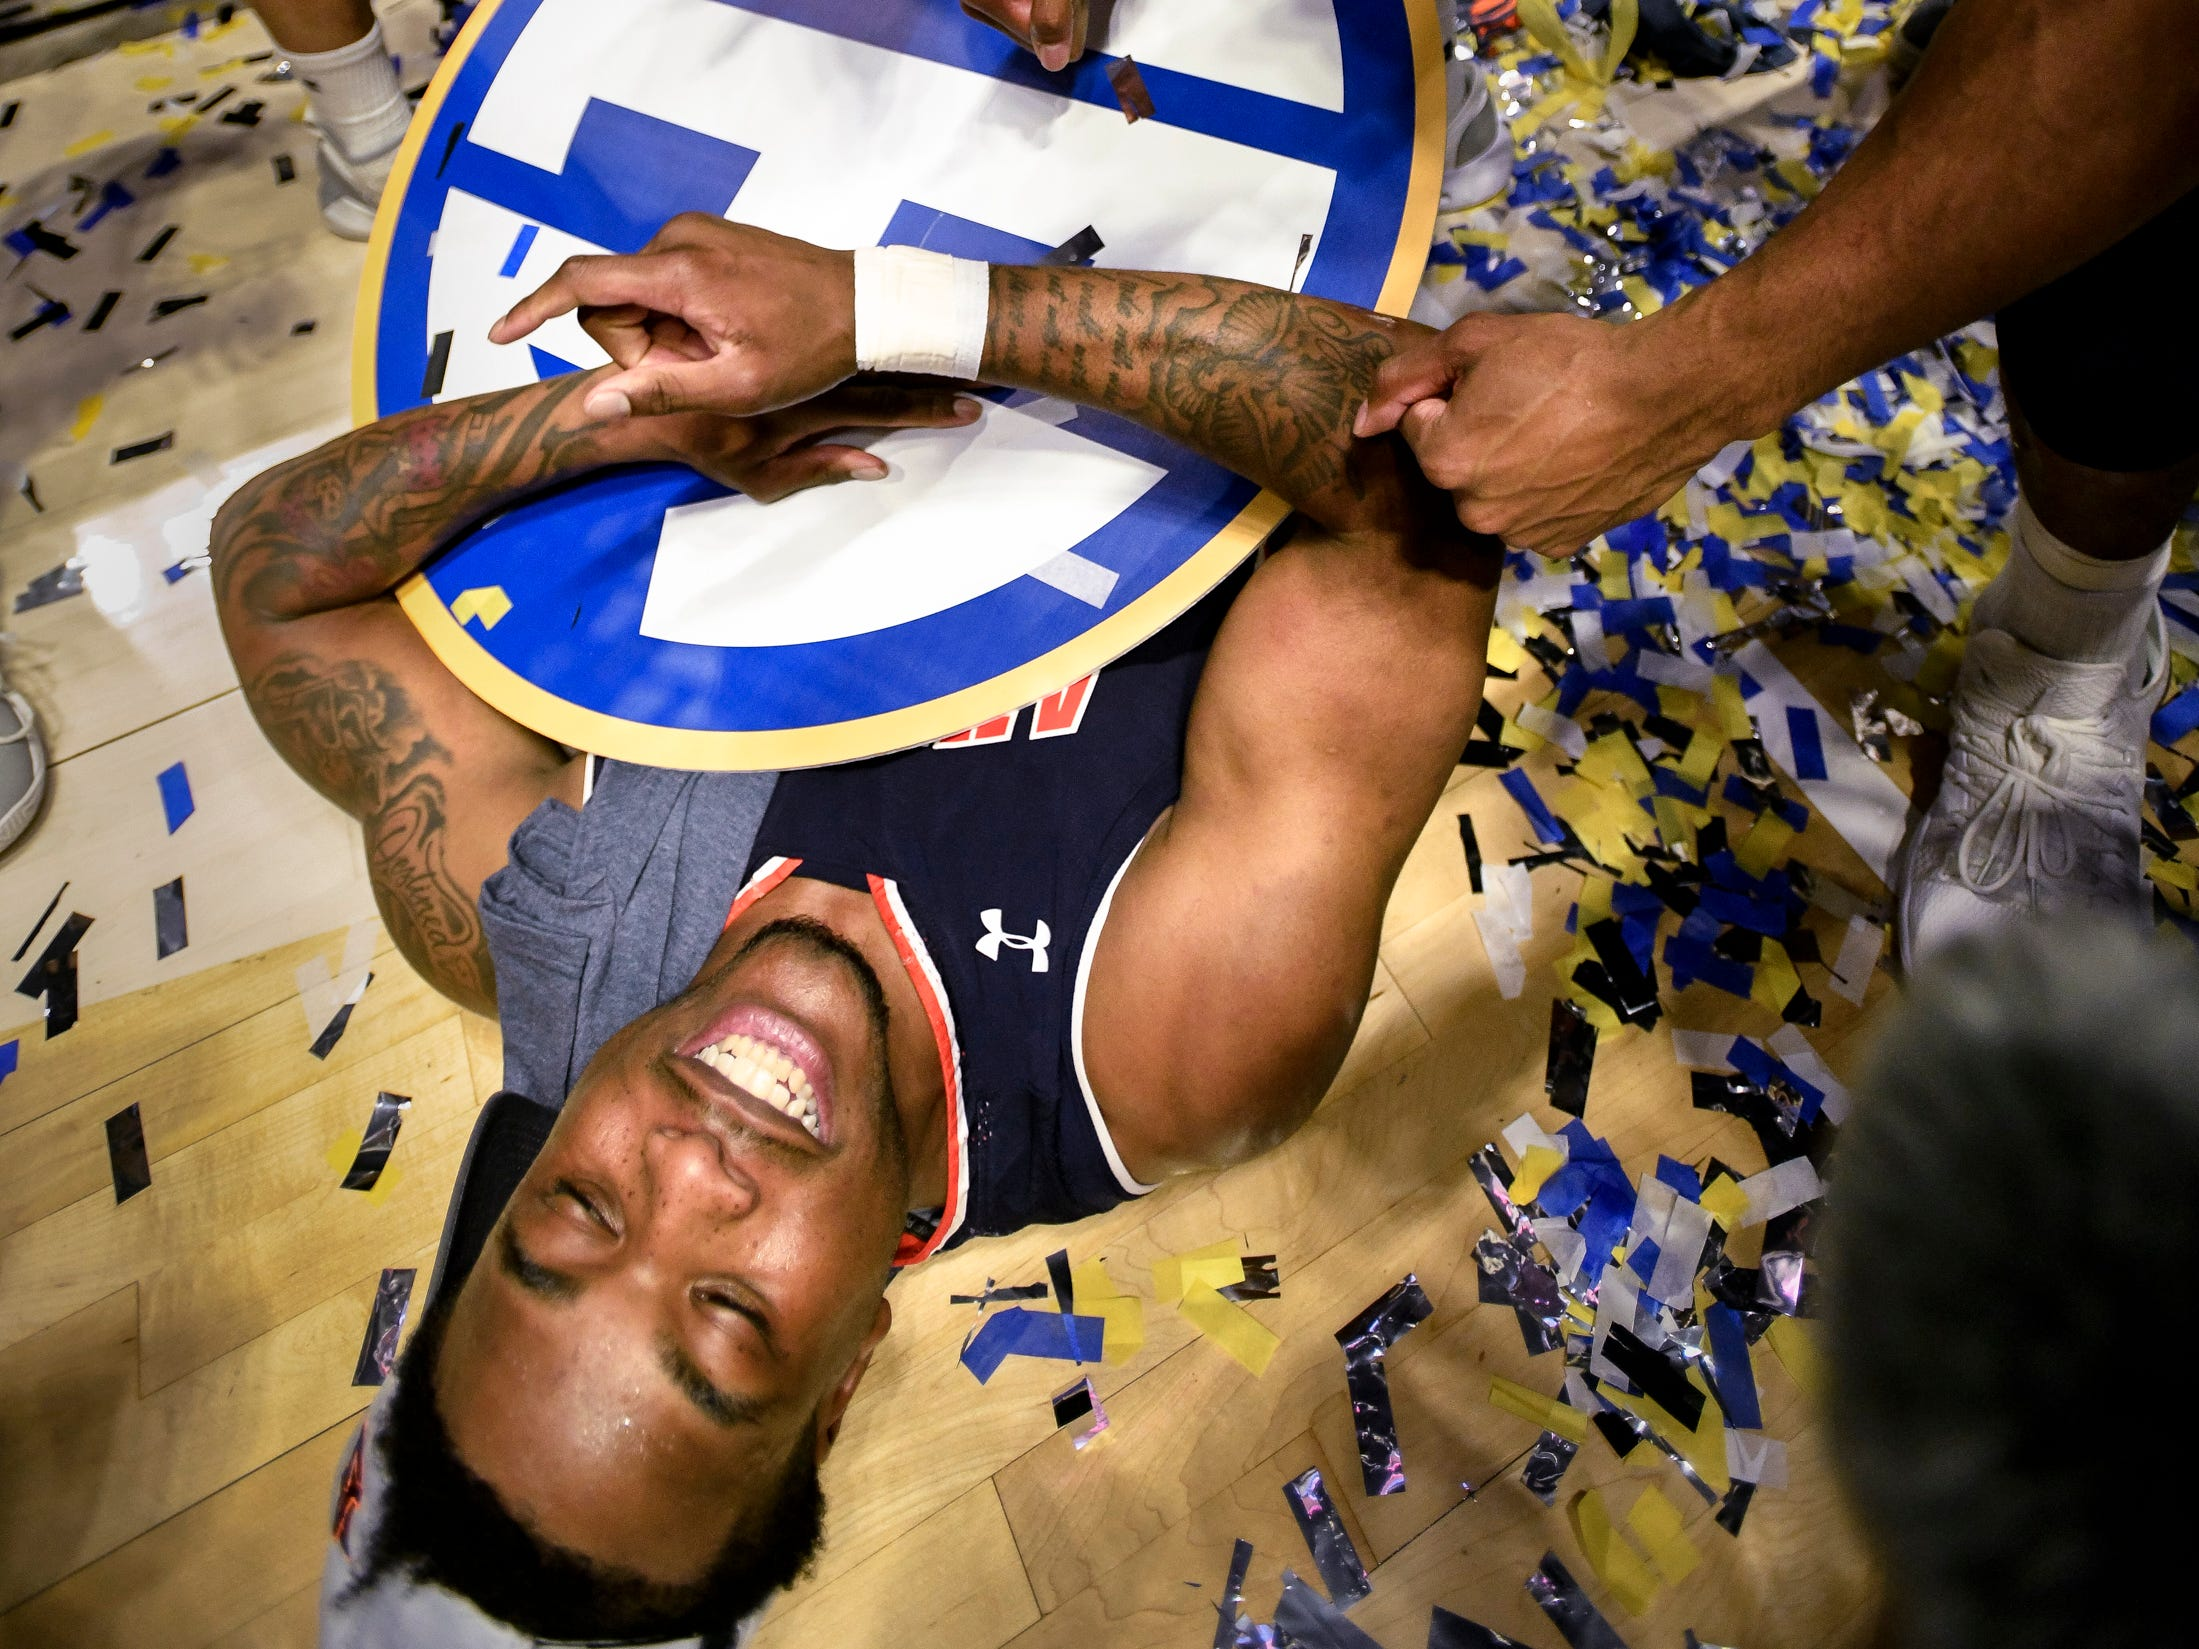 Auburn guard/forward Malik Dunbar (4) celebrates after their SEC Men's Basketball Tournament championship victory against Tennessee at Bridgestone Arena in Nashville, Tenn., Sunday, March 17, 2019.